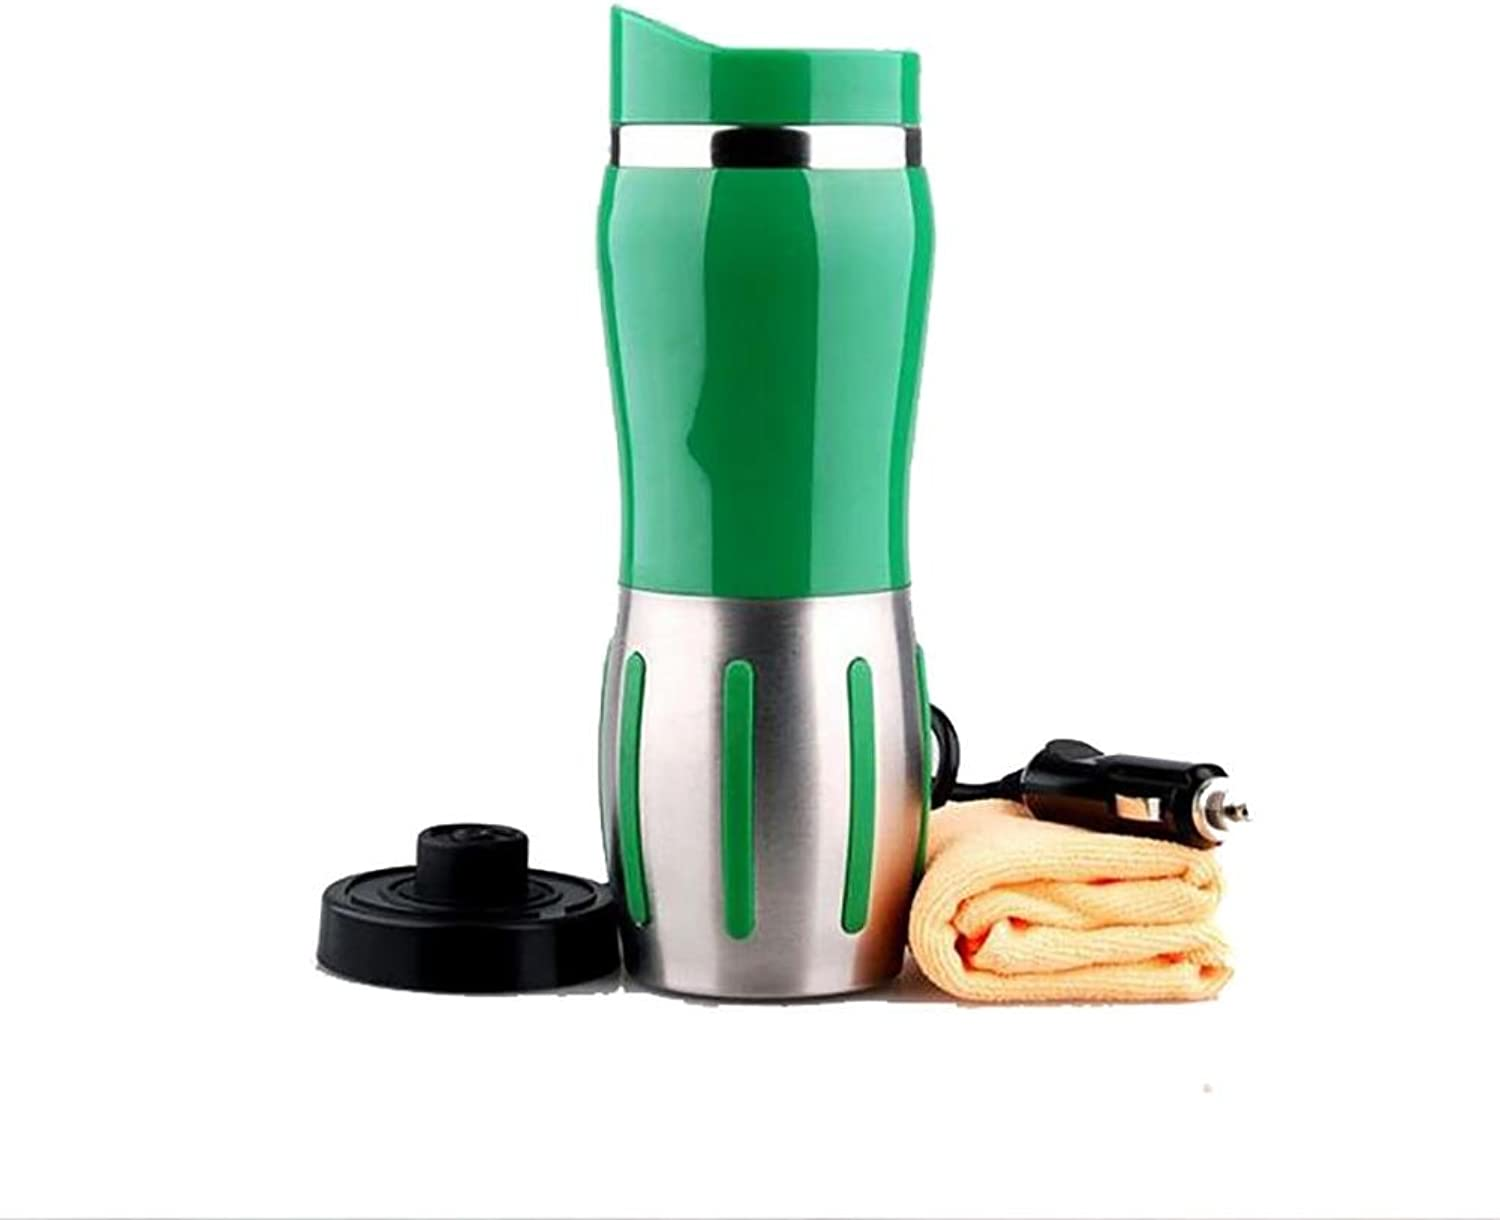 Auto Accessories Auto Accessories Car Electric Kettle Boiling 12 24 Volt Cigarette Lighter Heating Cup Vacuum Insulated Stainless Steel, Green, 24V